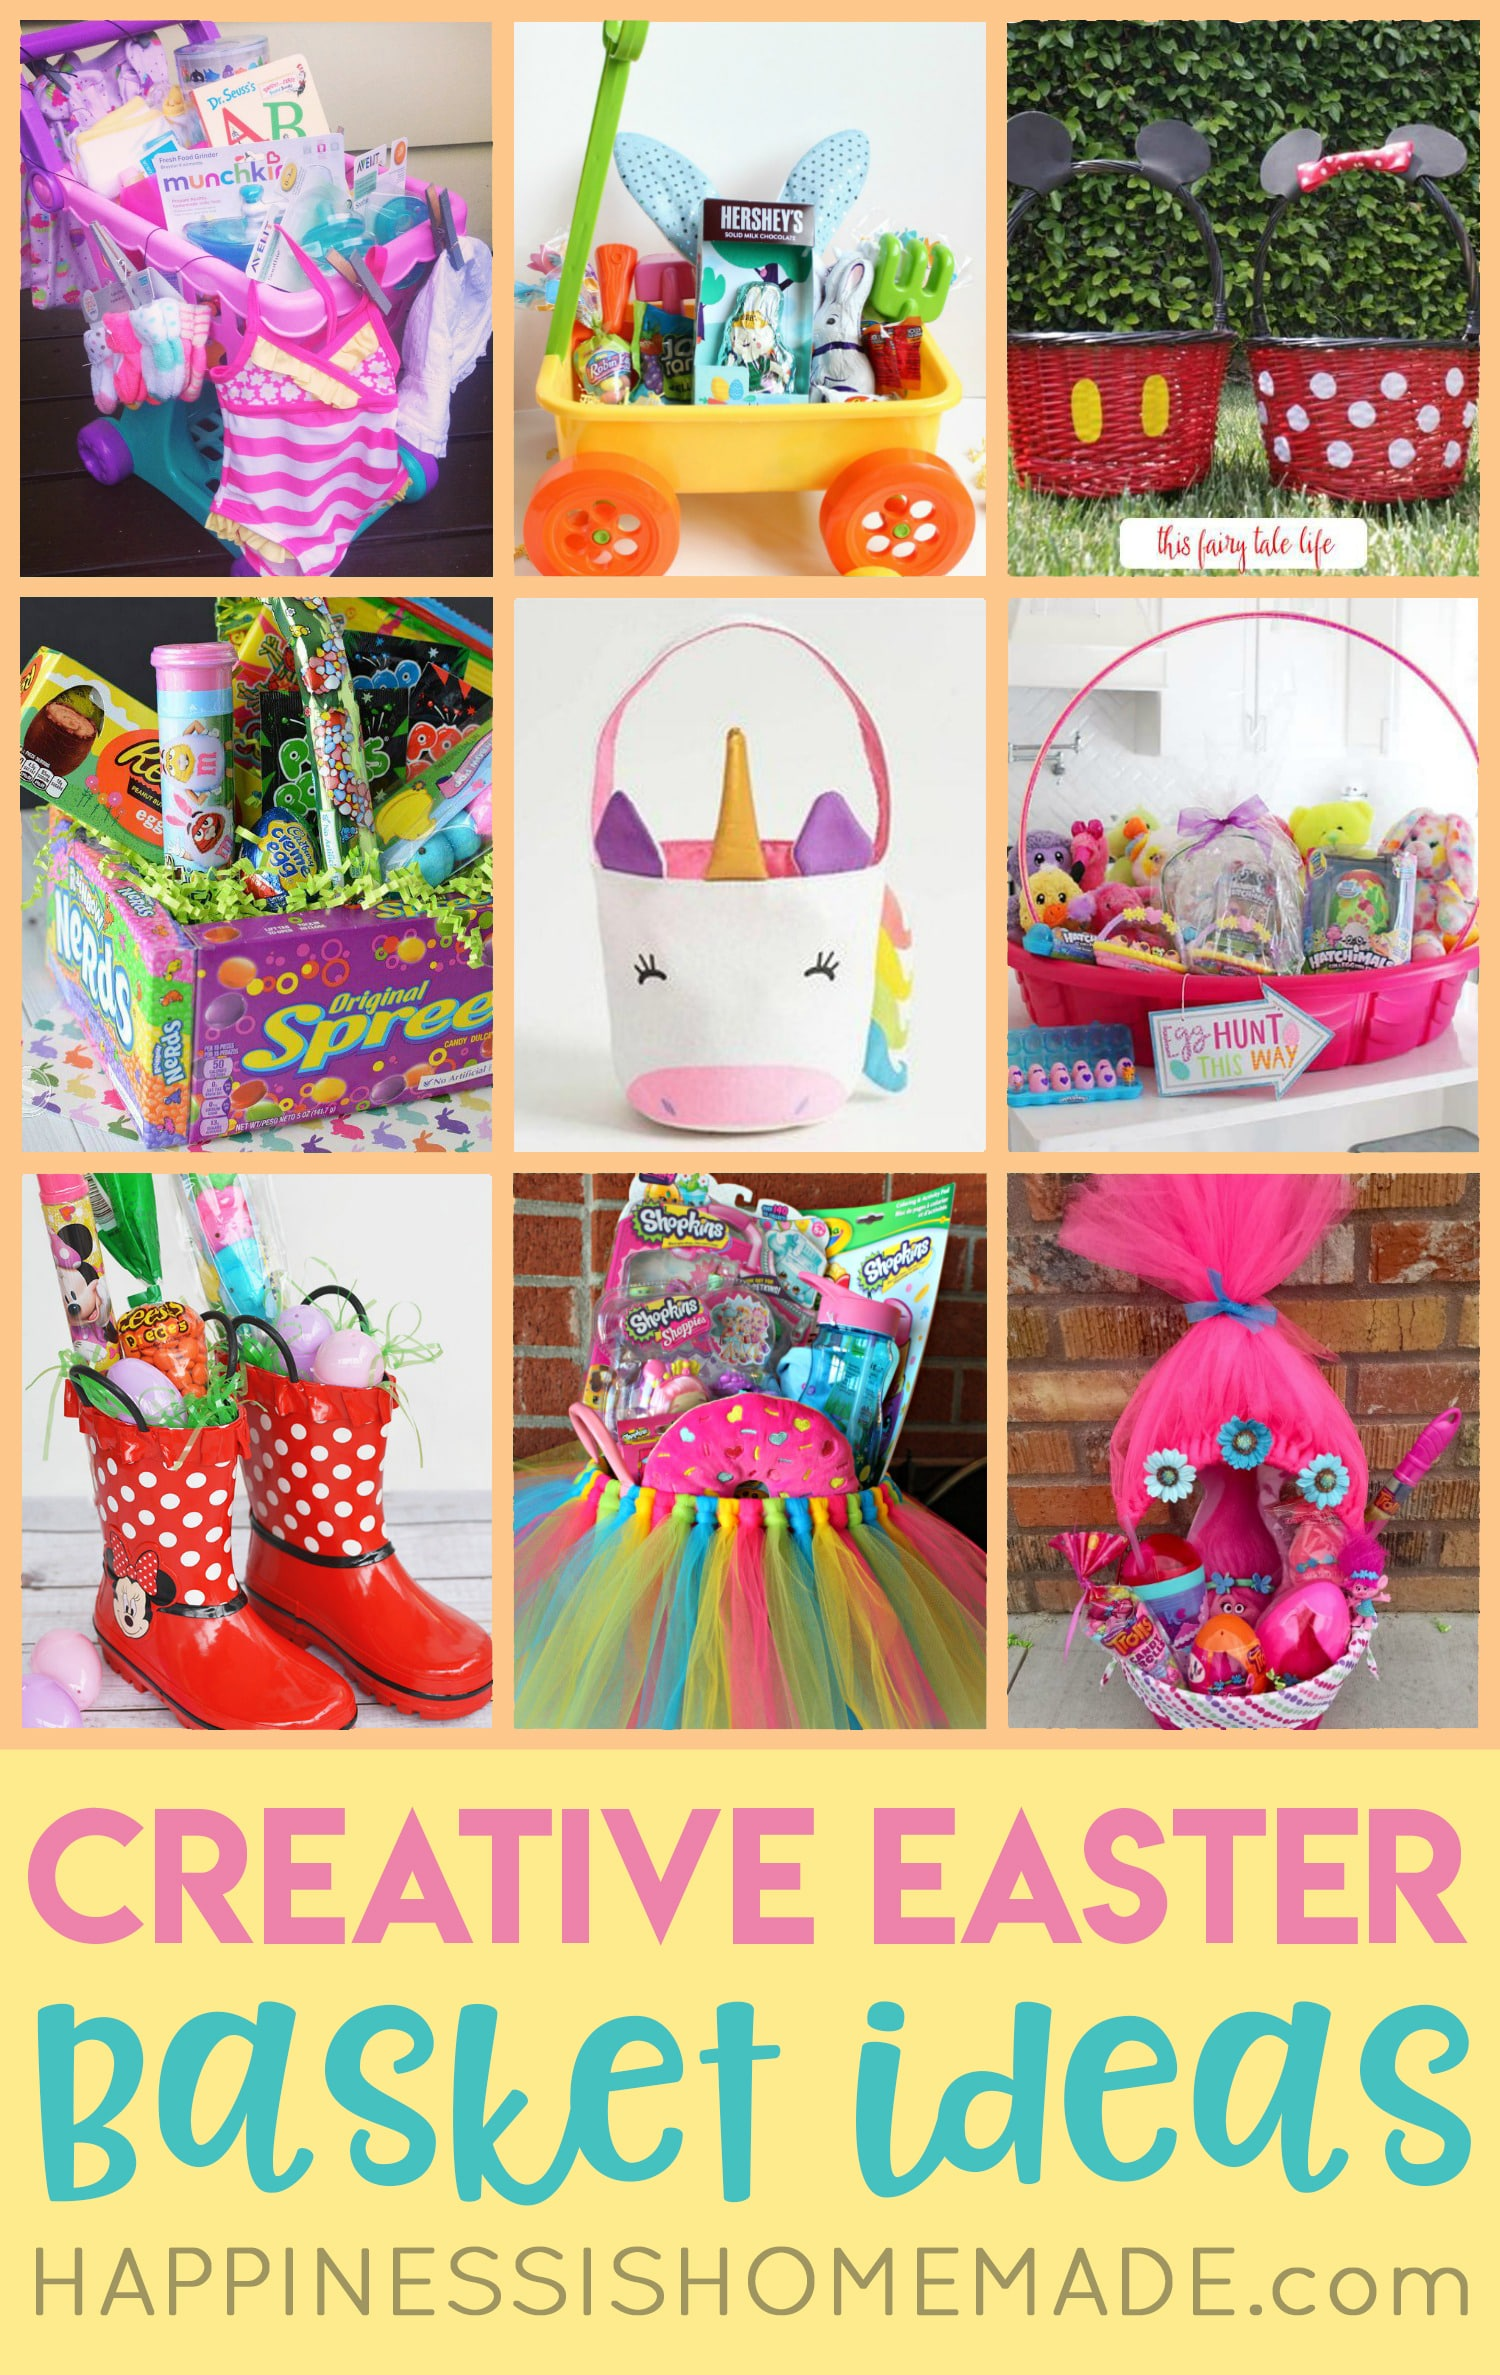 16 Creative Easter Basket Ideas Happiness Is Homemade